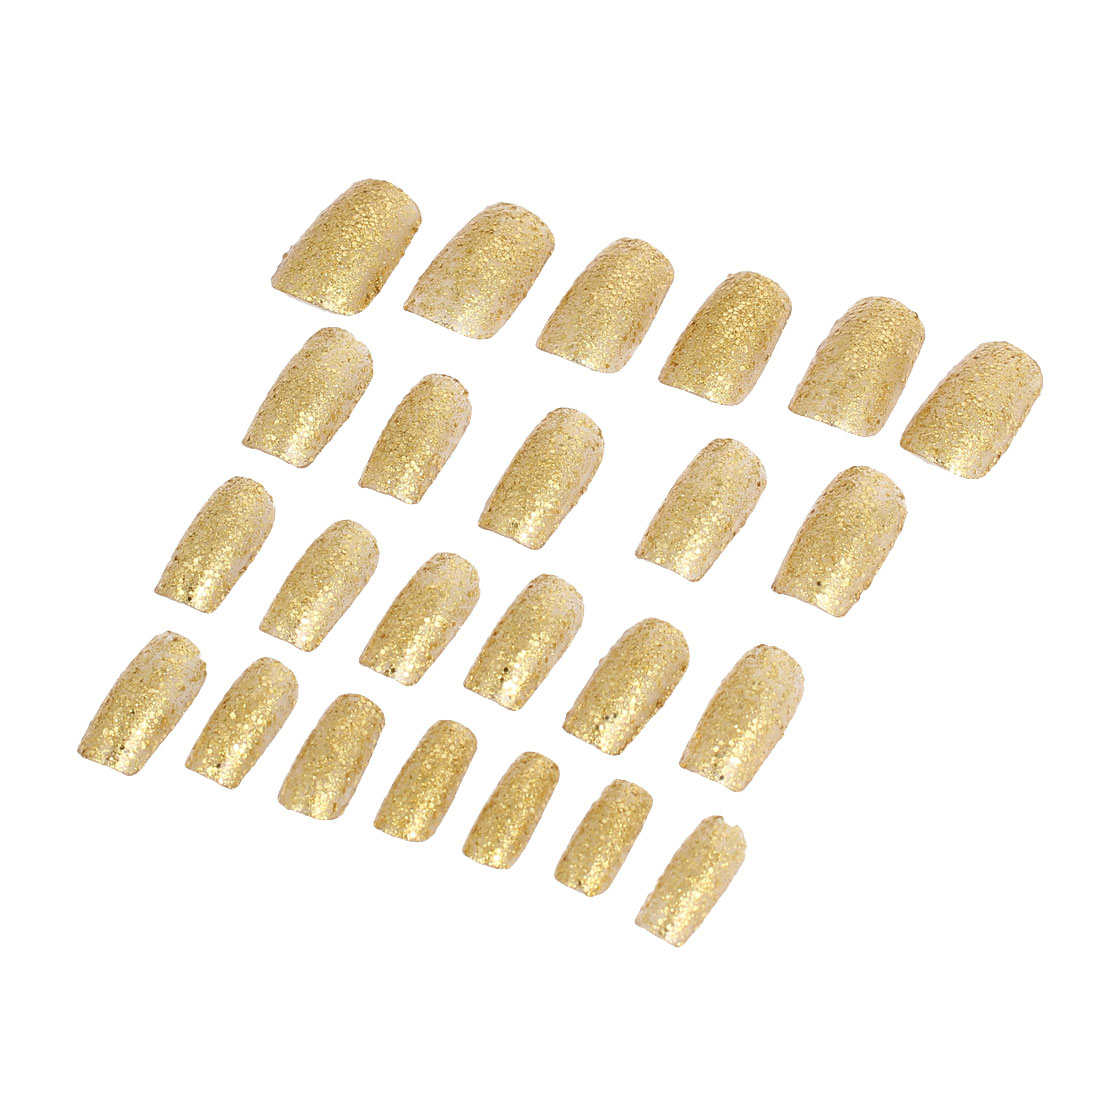 Unique Bargains Lady Powder Detail DIY Fake False Fingernail Full Nail Art Tip Gold Tone 24 in 1